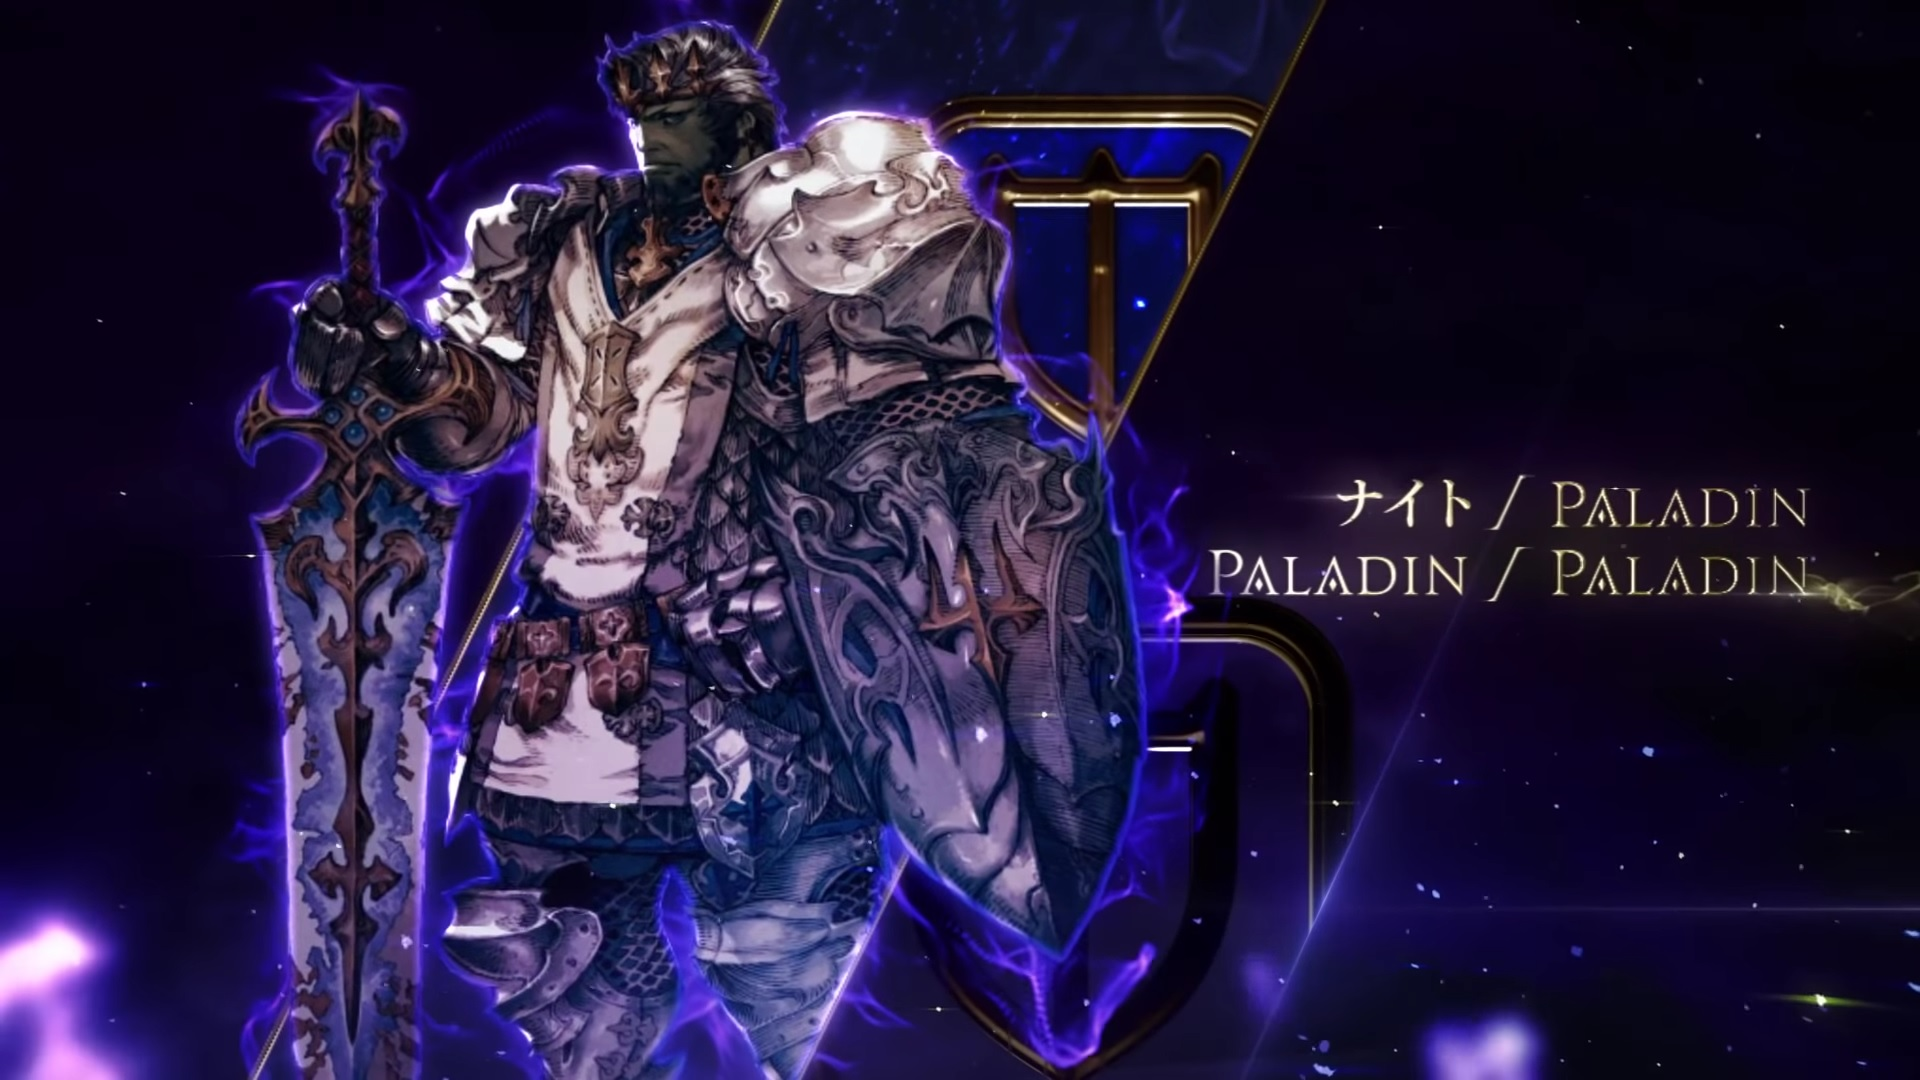 Ff14 Paladin Abilities – HD Wallpapers